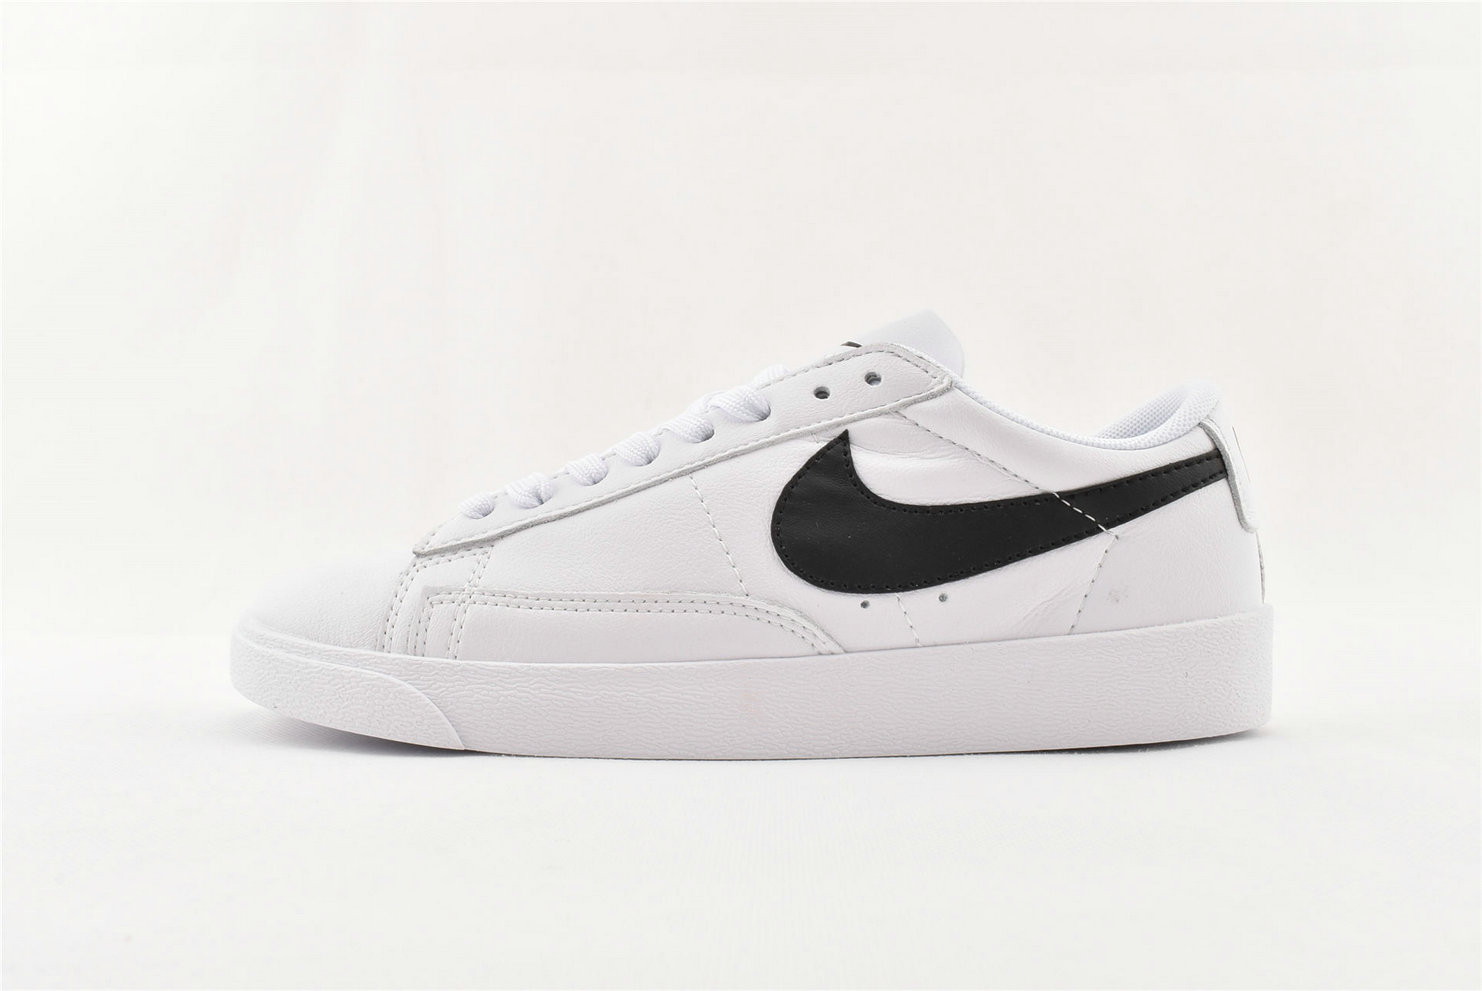 Where To Buy Cheap Nike Blazer Low PRM White Black BQ7306 001